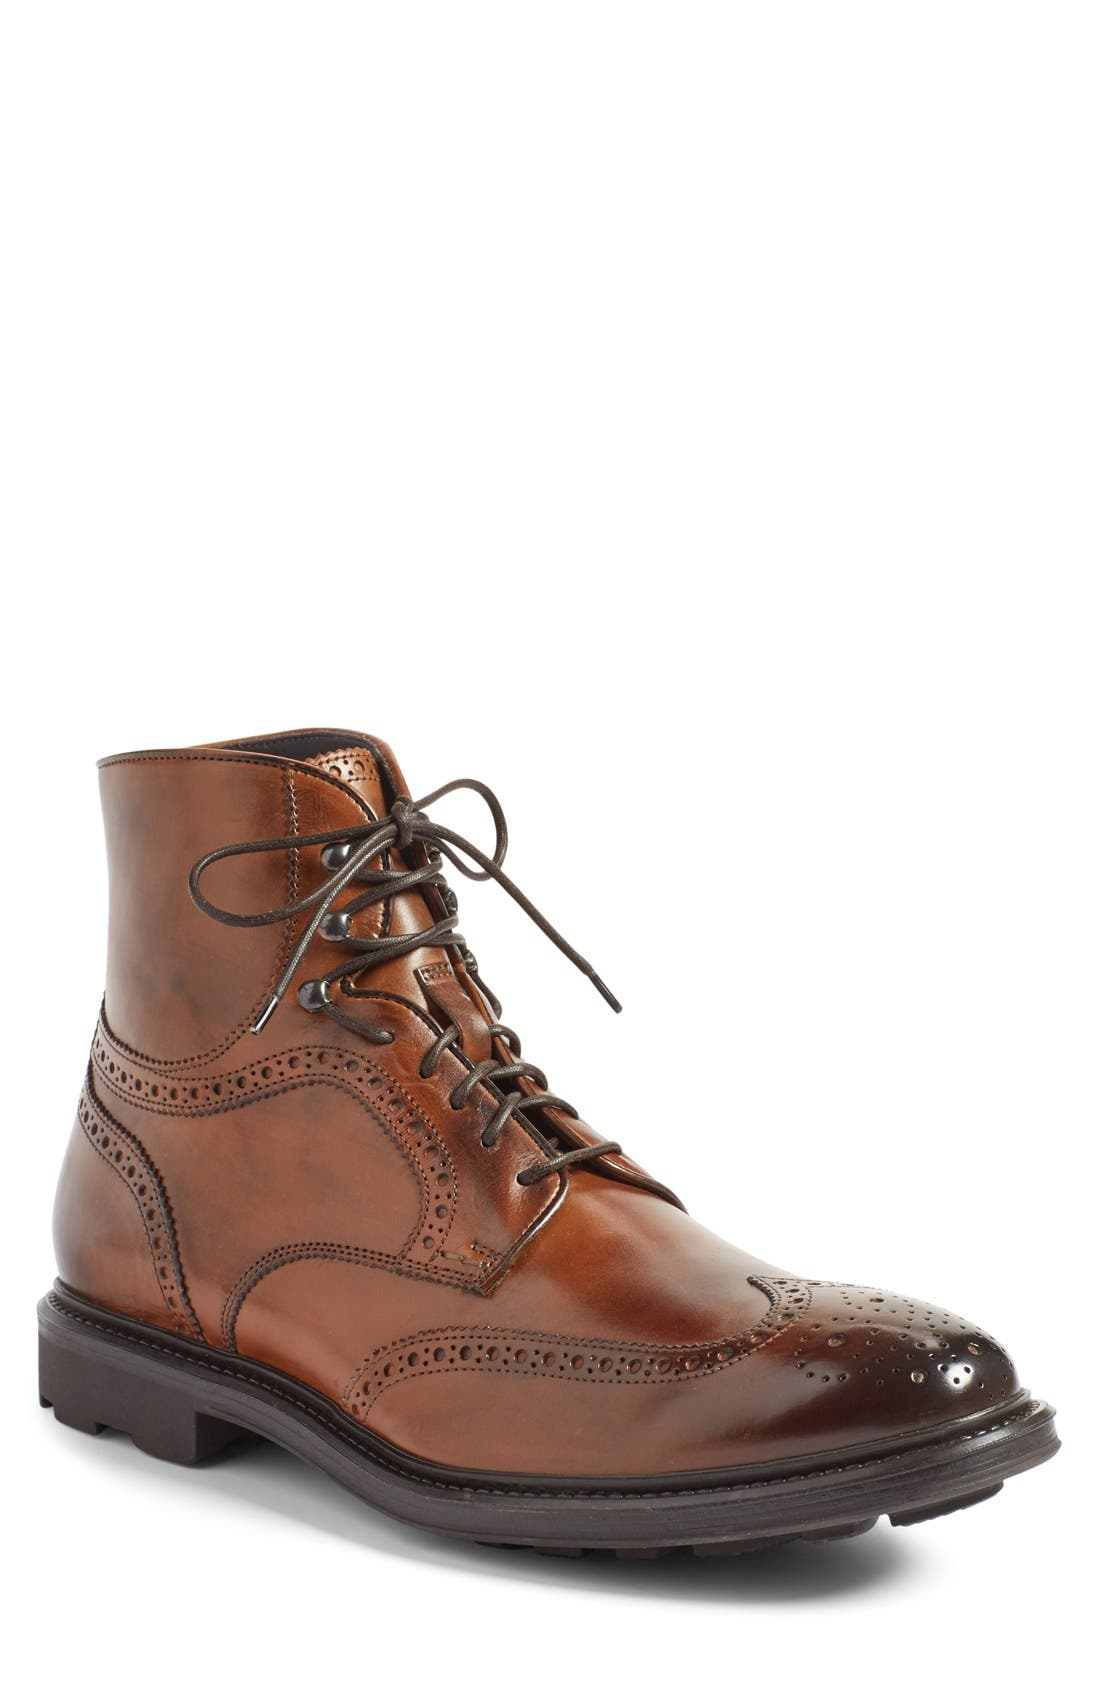 Main Image - To Boot New York 'Hobson' Wingtip Boot (Men)